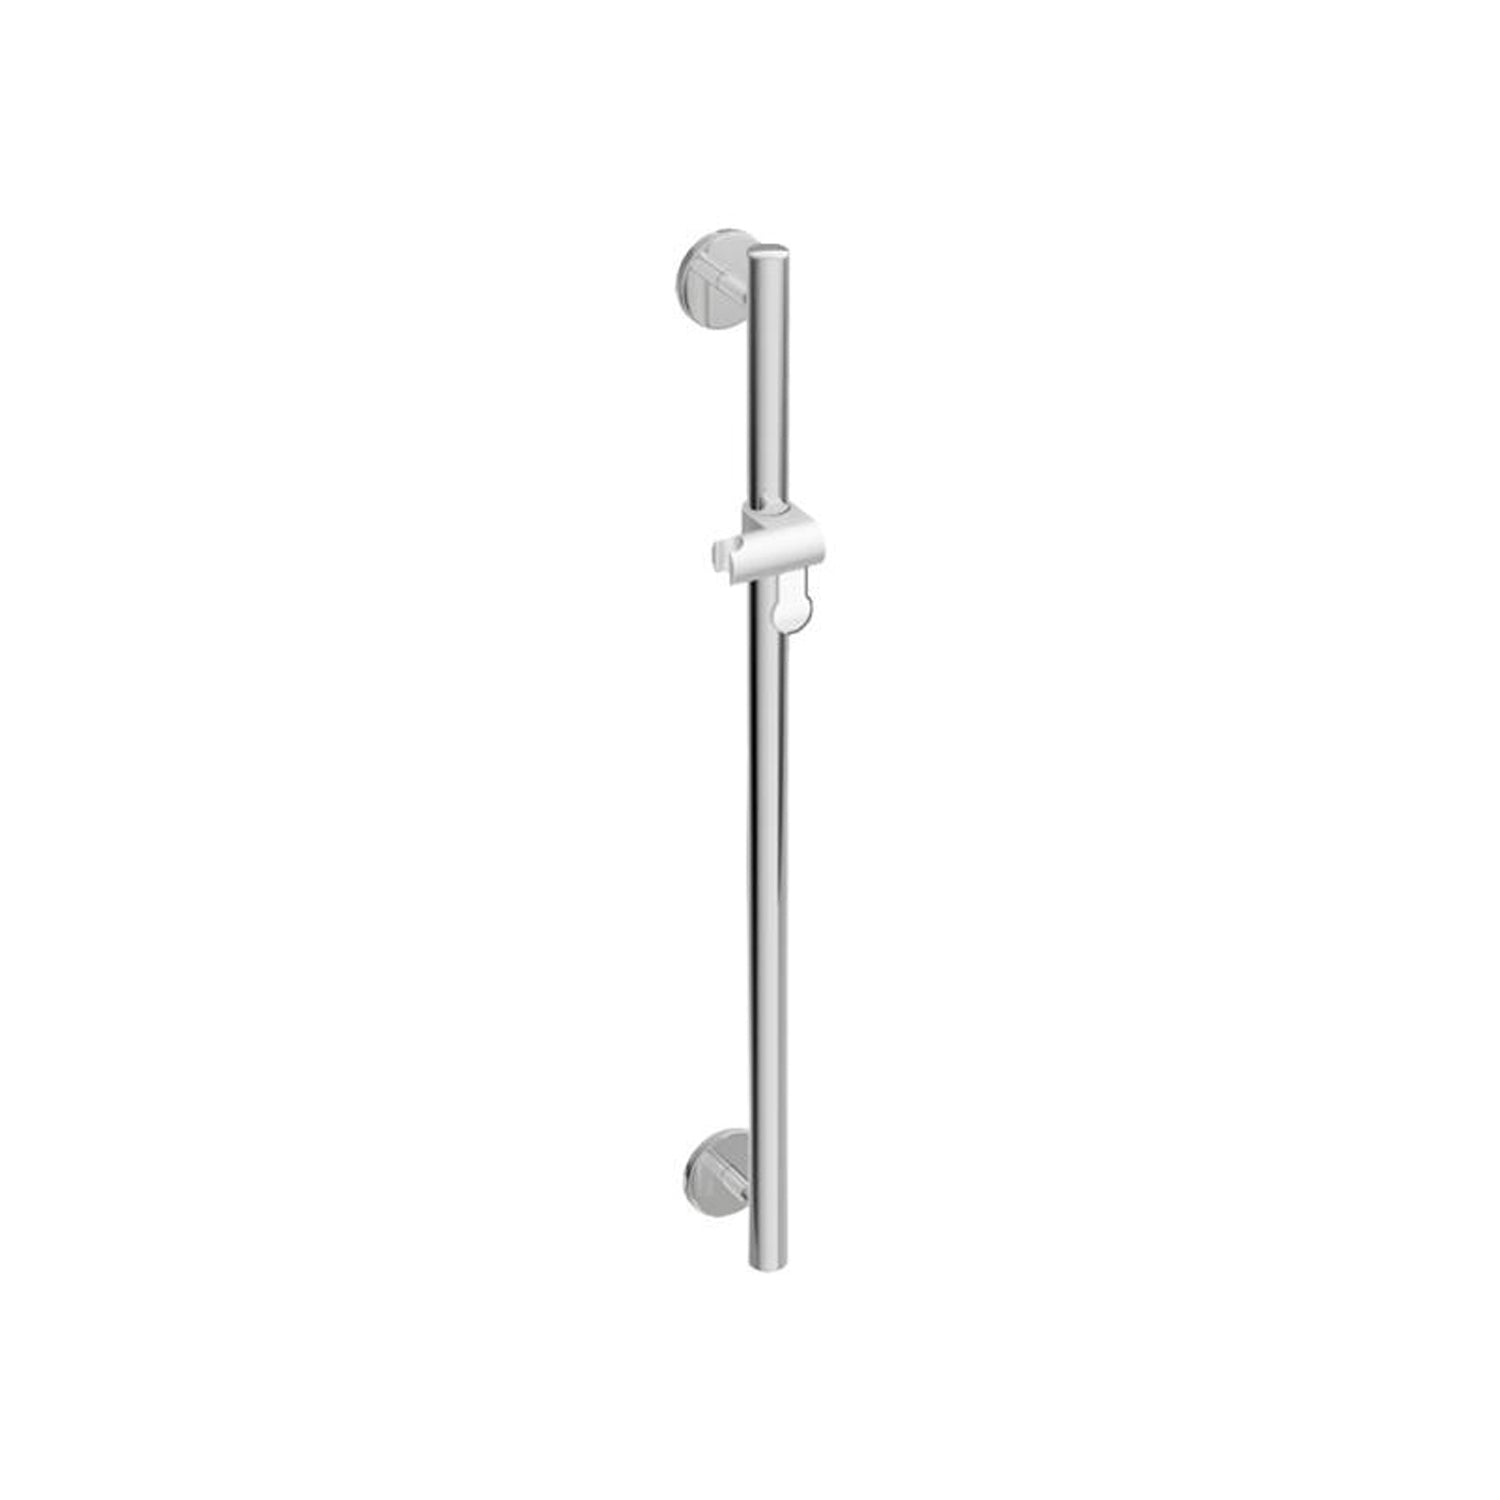 1100mm Circula Supportive Shower Rail with a chrome finish on a white background